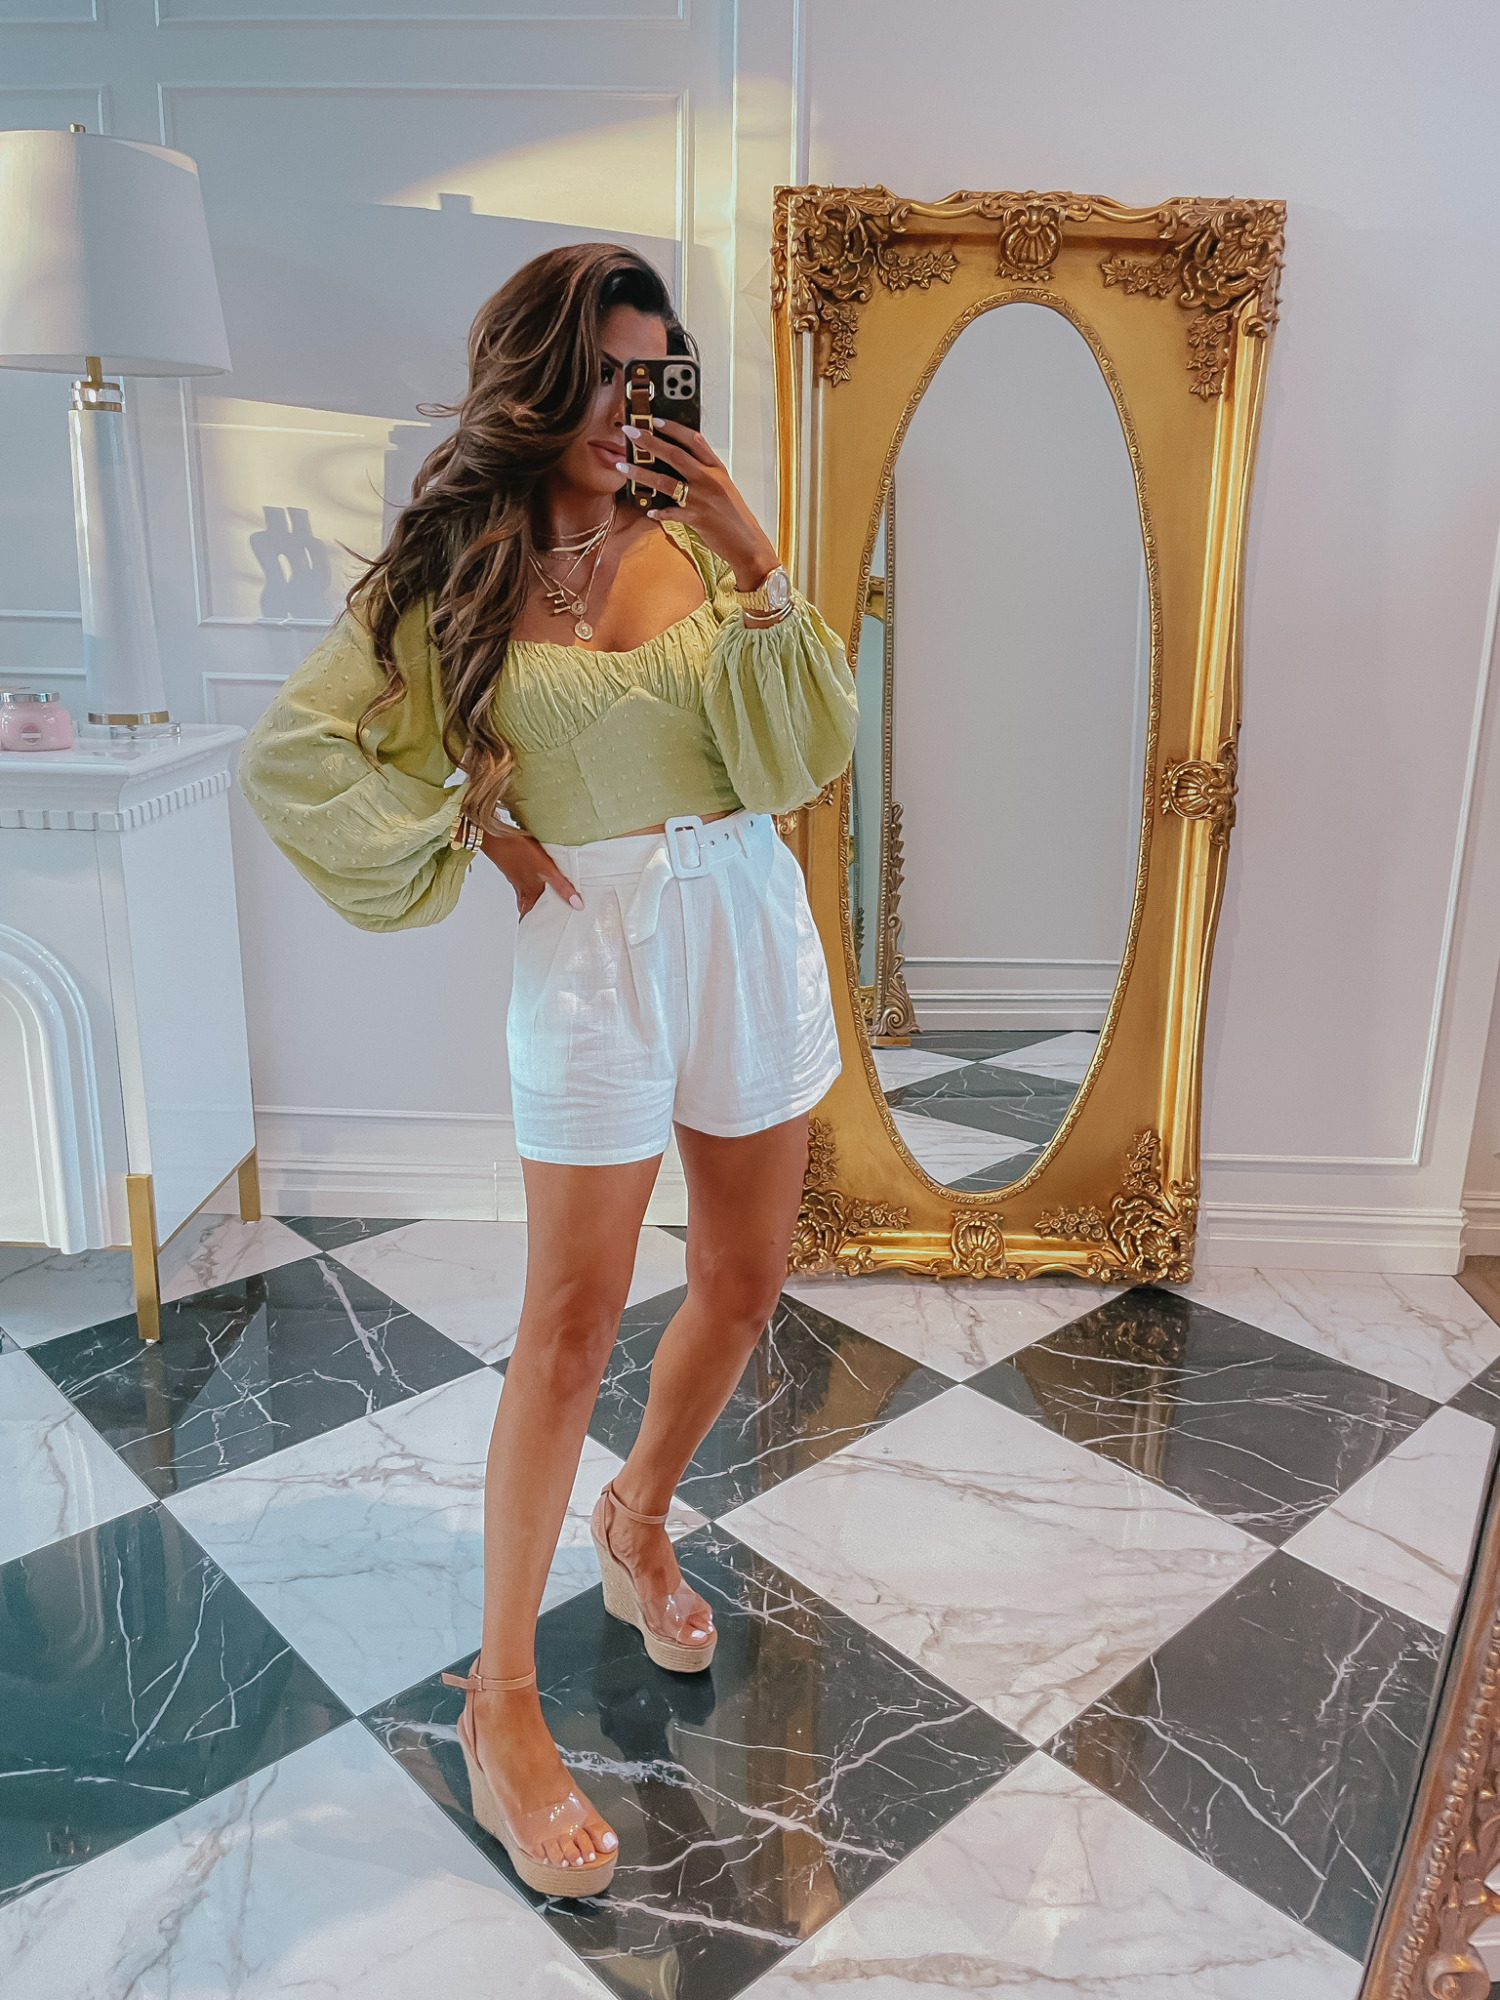 Emily-ann-gemma-forever-21-try-on-haul-ltk-day-sale-shorts-summer-outfit   LTK Sales by popular US fashion blog, The Sweetest Thing: image of Emily Gemma wearing a green puff sleeve blouse, white shorts, and brown espadrilles.